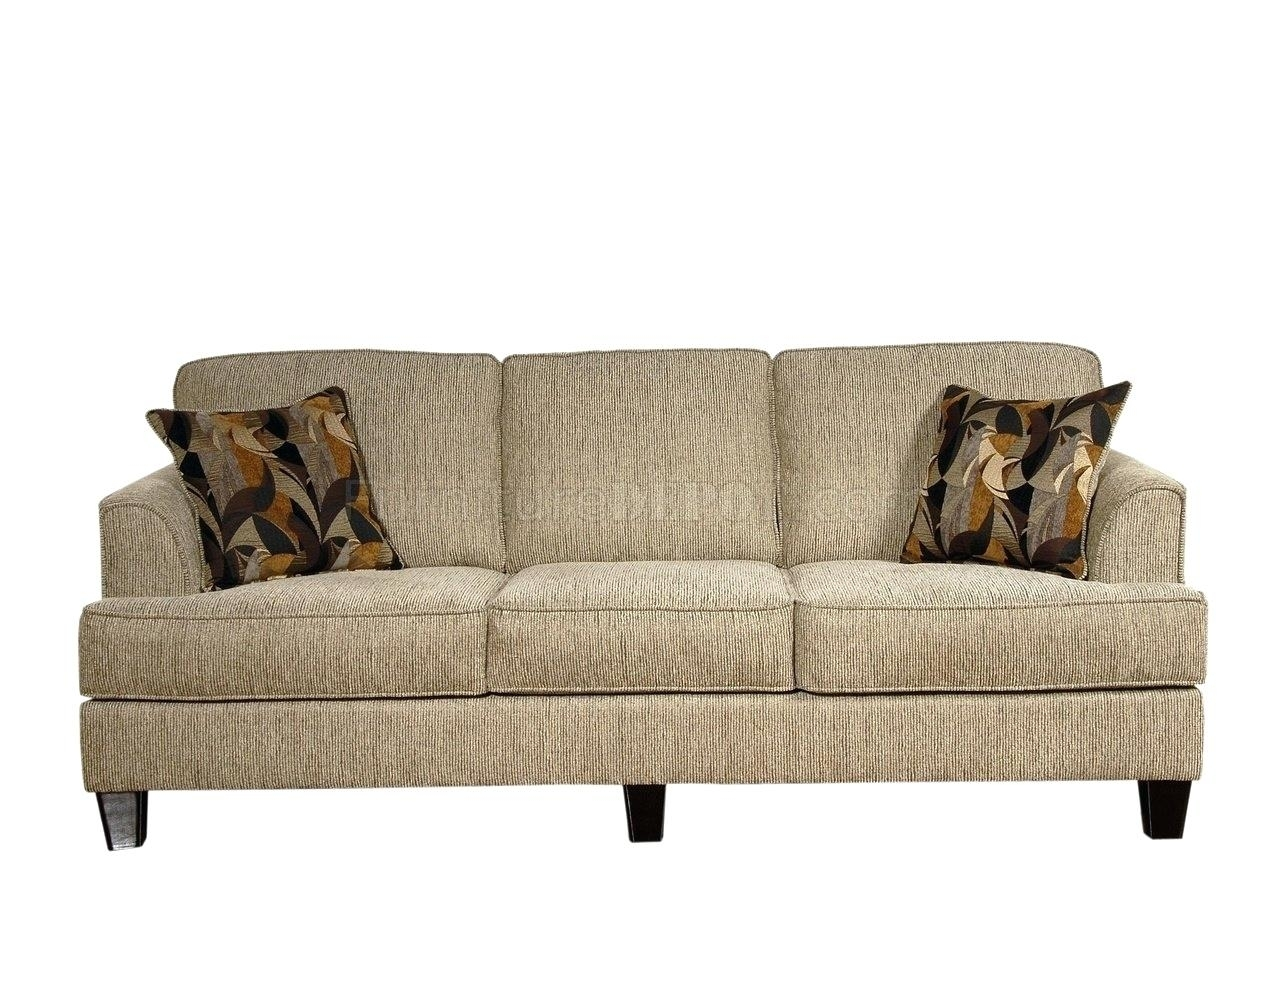 Sofa : 1920Sofa And Chairet Blueets In Leather Onale Casa Evora Regarding Clarksville Tn Sectional Sofas (View 10 of 10)